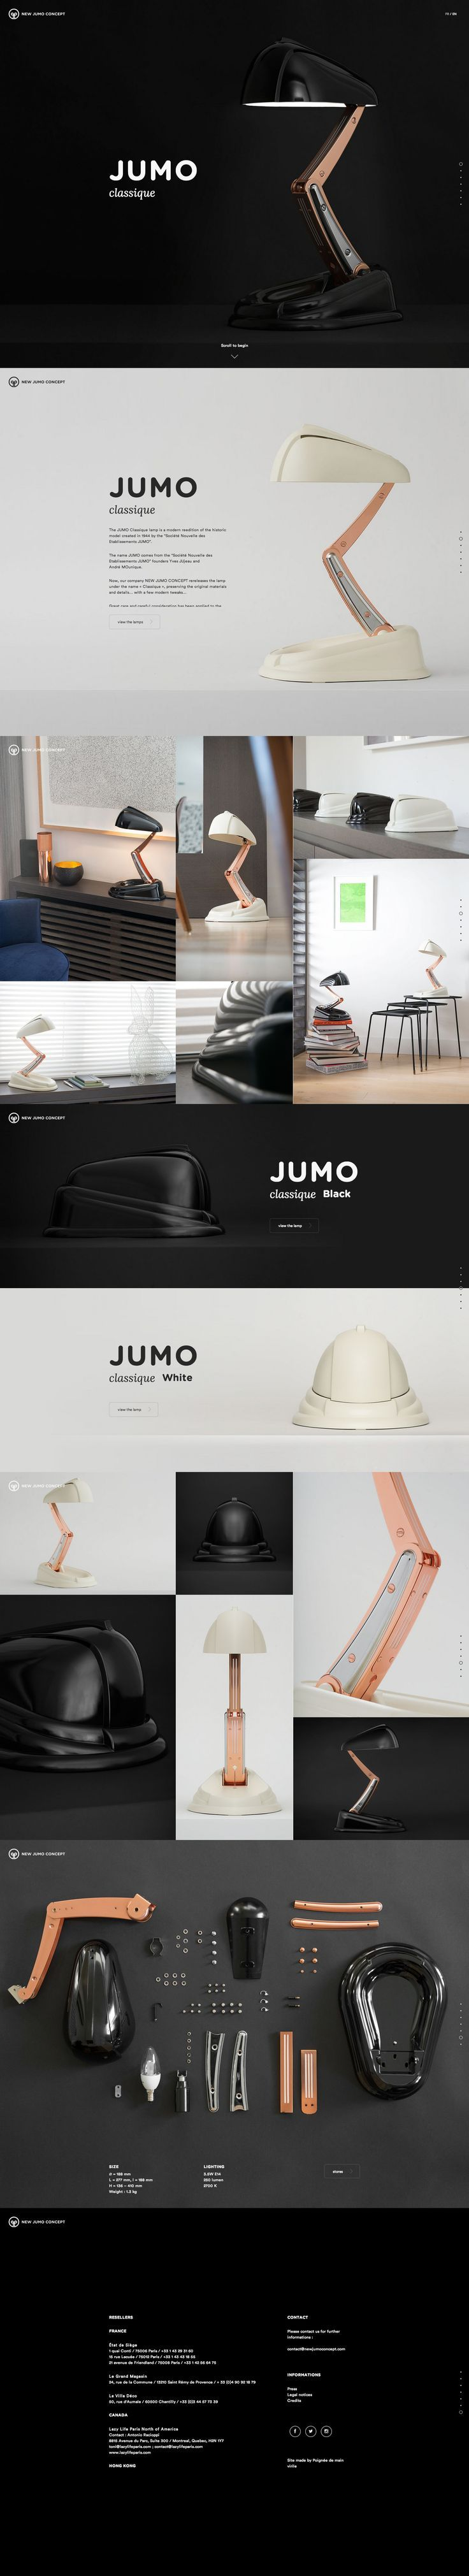 30 Examples of Trendy & Modern Web Design